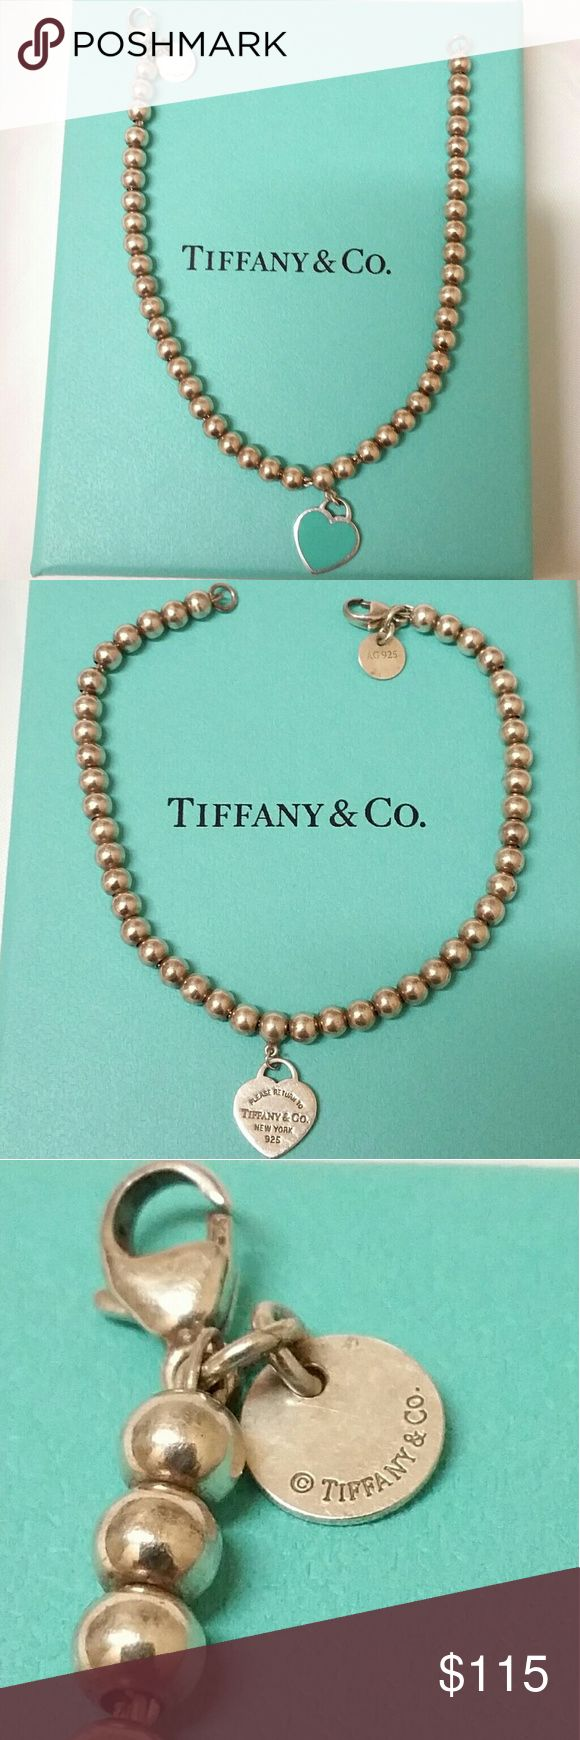 Authentic Tiffany Bracelet 100% Authentic Tiffany beaded bracelet with ceramic Tiffany Blue heart on front and Return To Tiffany on rear. .925 Silver with all the Tiffany signature hallmarks. 7 inches in legth. Pristine condition clean, shiny, and ready to wear. Will be shipped with original box bag bow.  A highly sought-after piece for the avid Tiffany fan. Price is FIRM. Tiffany & Co. Jewelry Bracelets